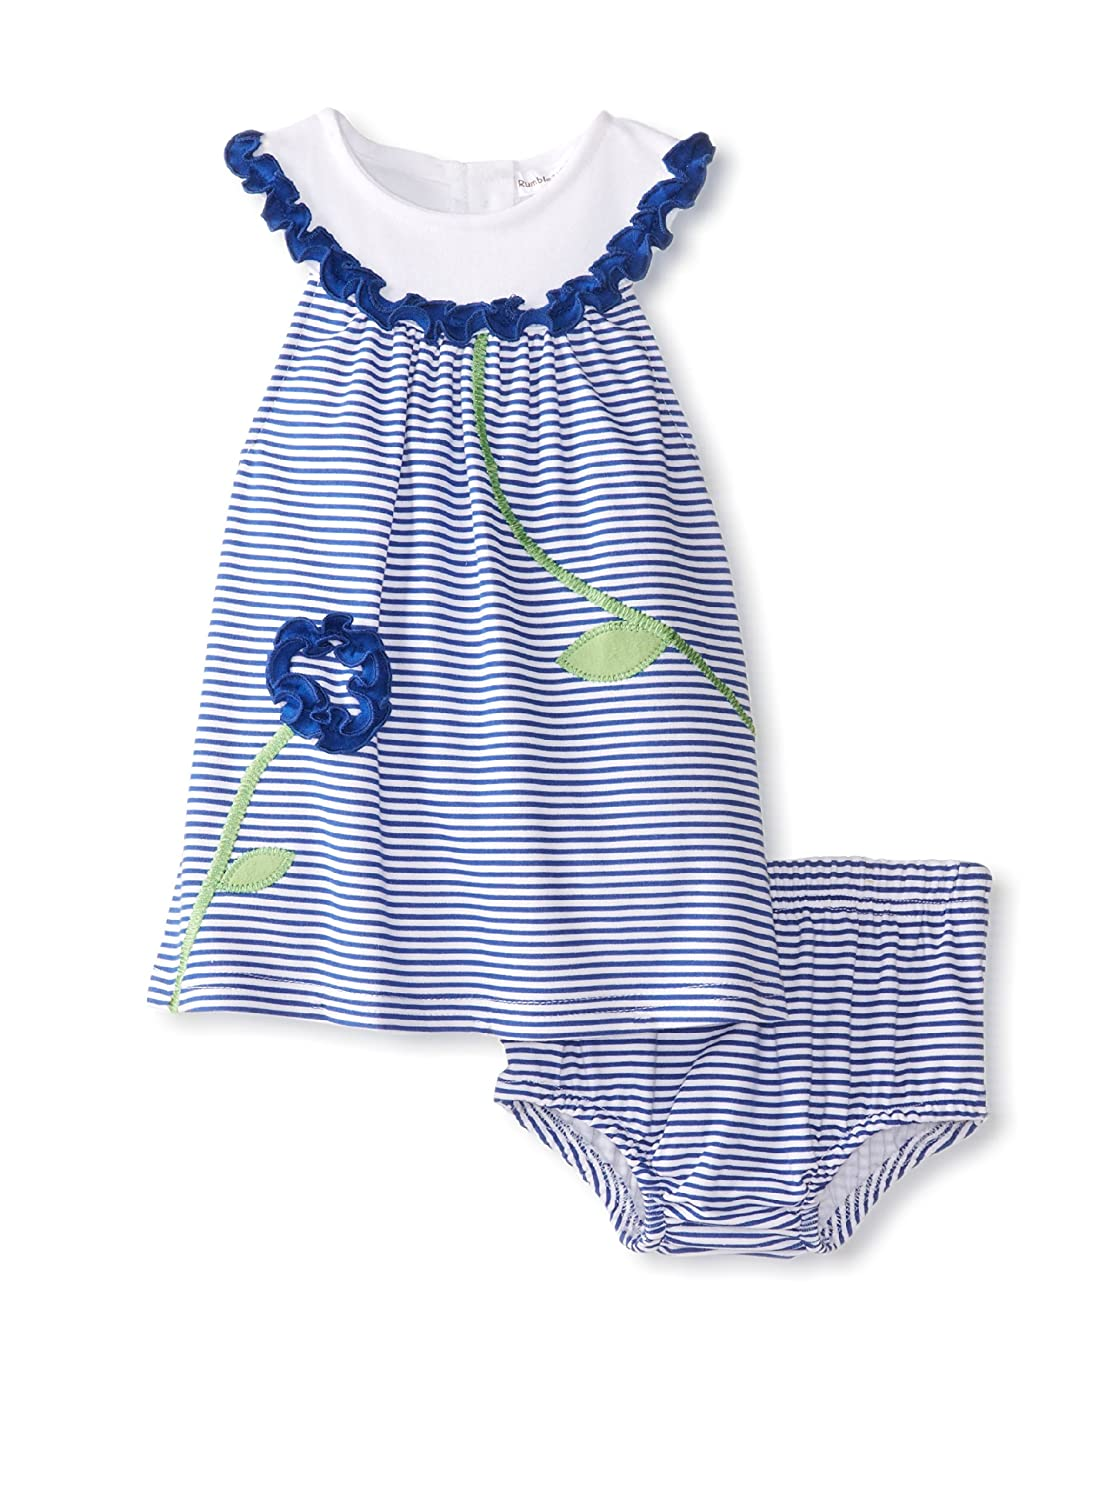 rumble tumble DS4105N Baby Clothing, Blue, 6-9